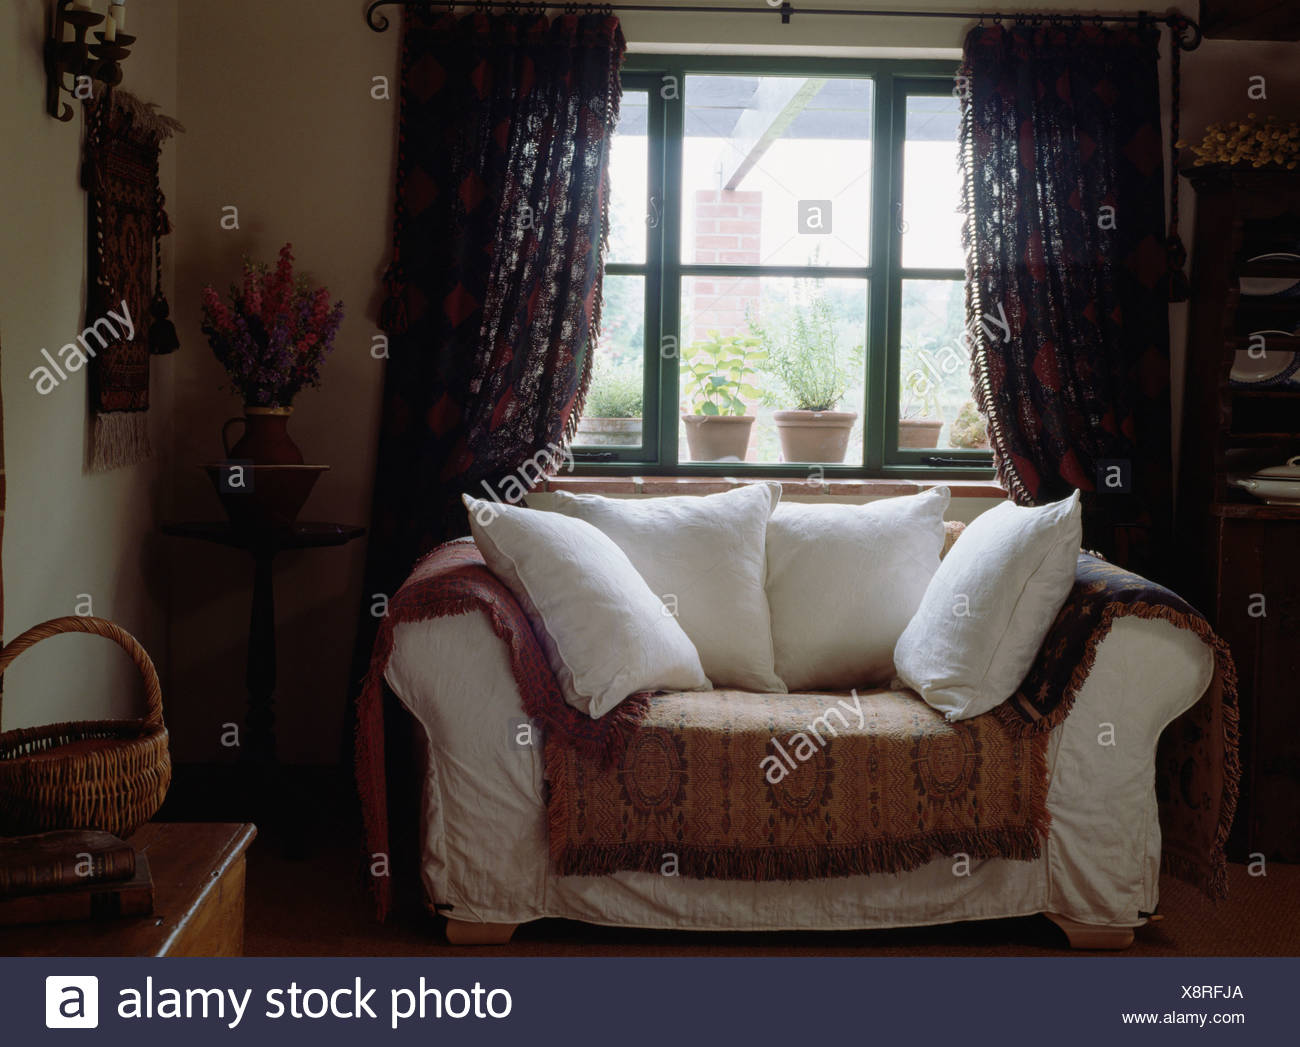 Ordinaire White Cushions On White Sofa With Patterned Throw In Front Of Window In Small  Cottage Living Room